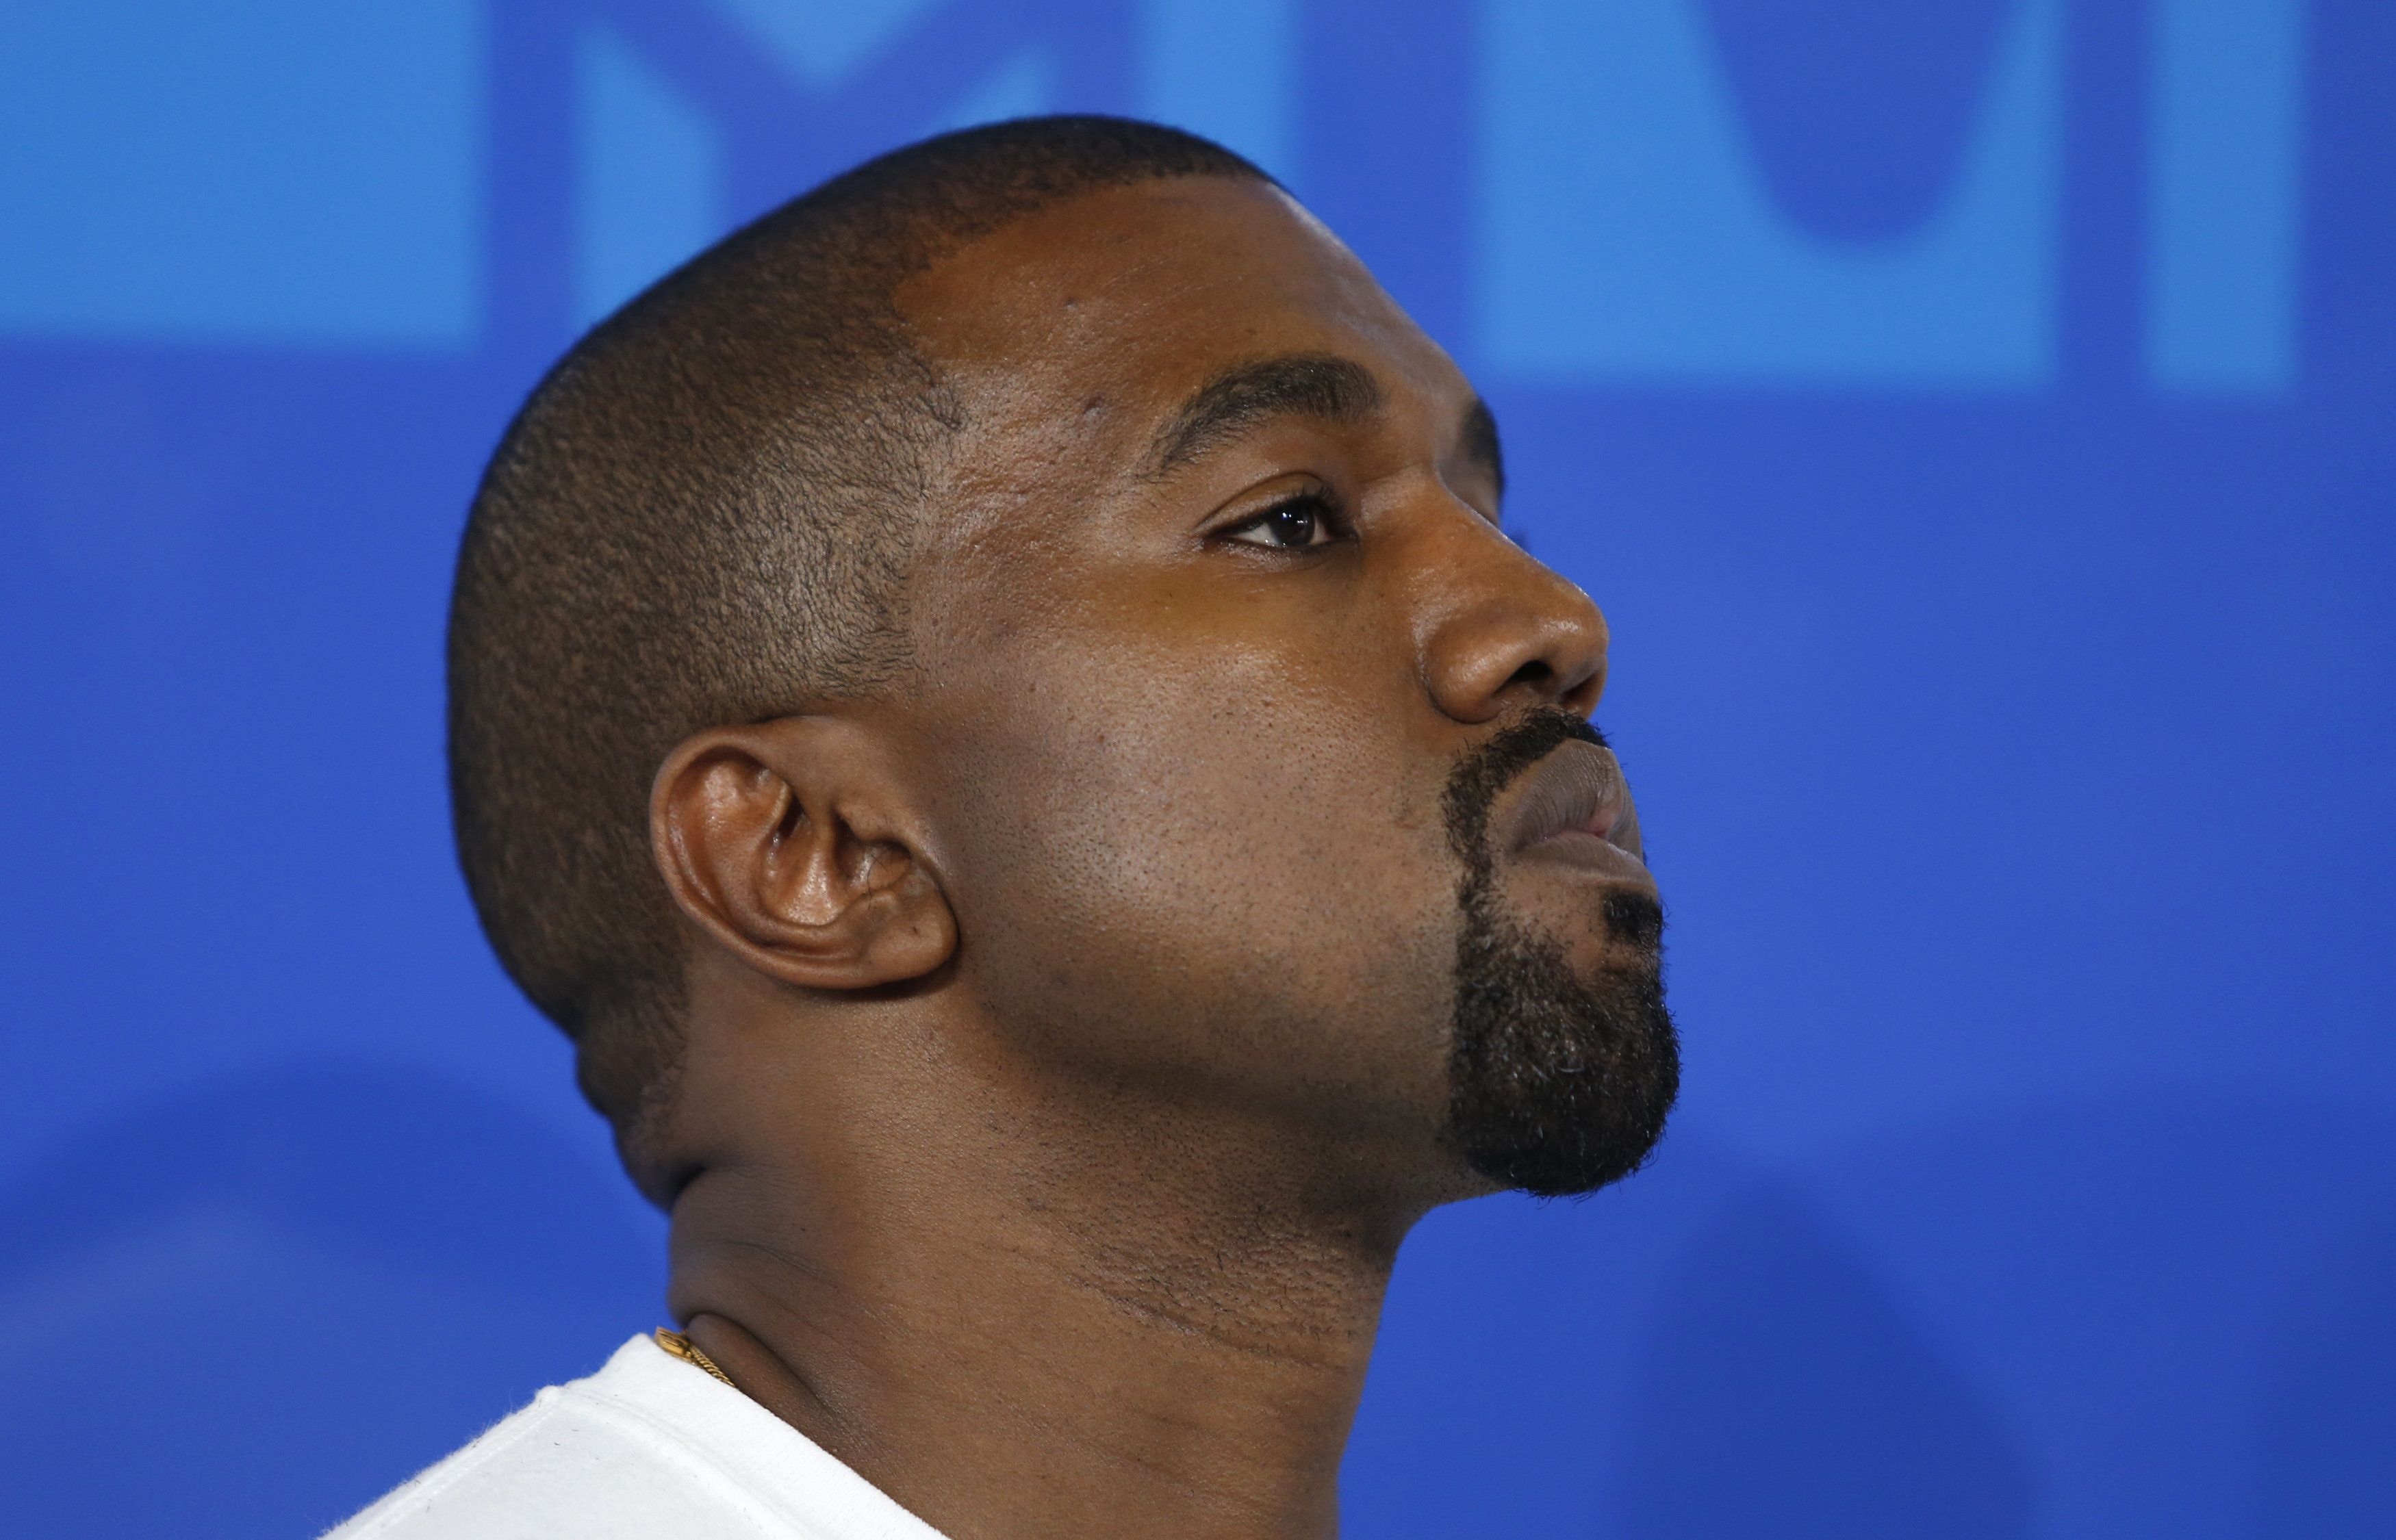 Kanye West said Sunday that he is running for president, but not this time around.